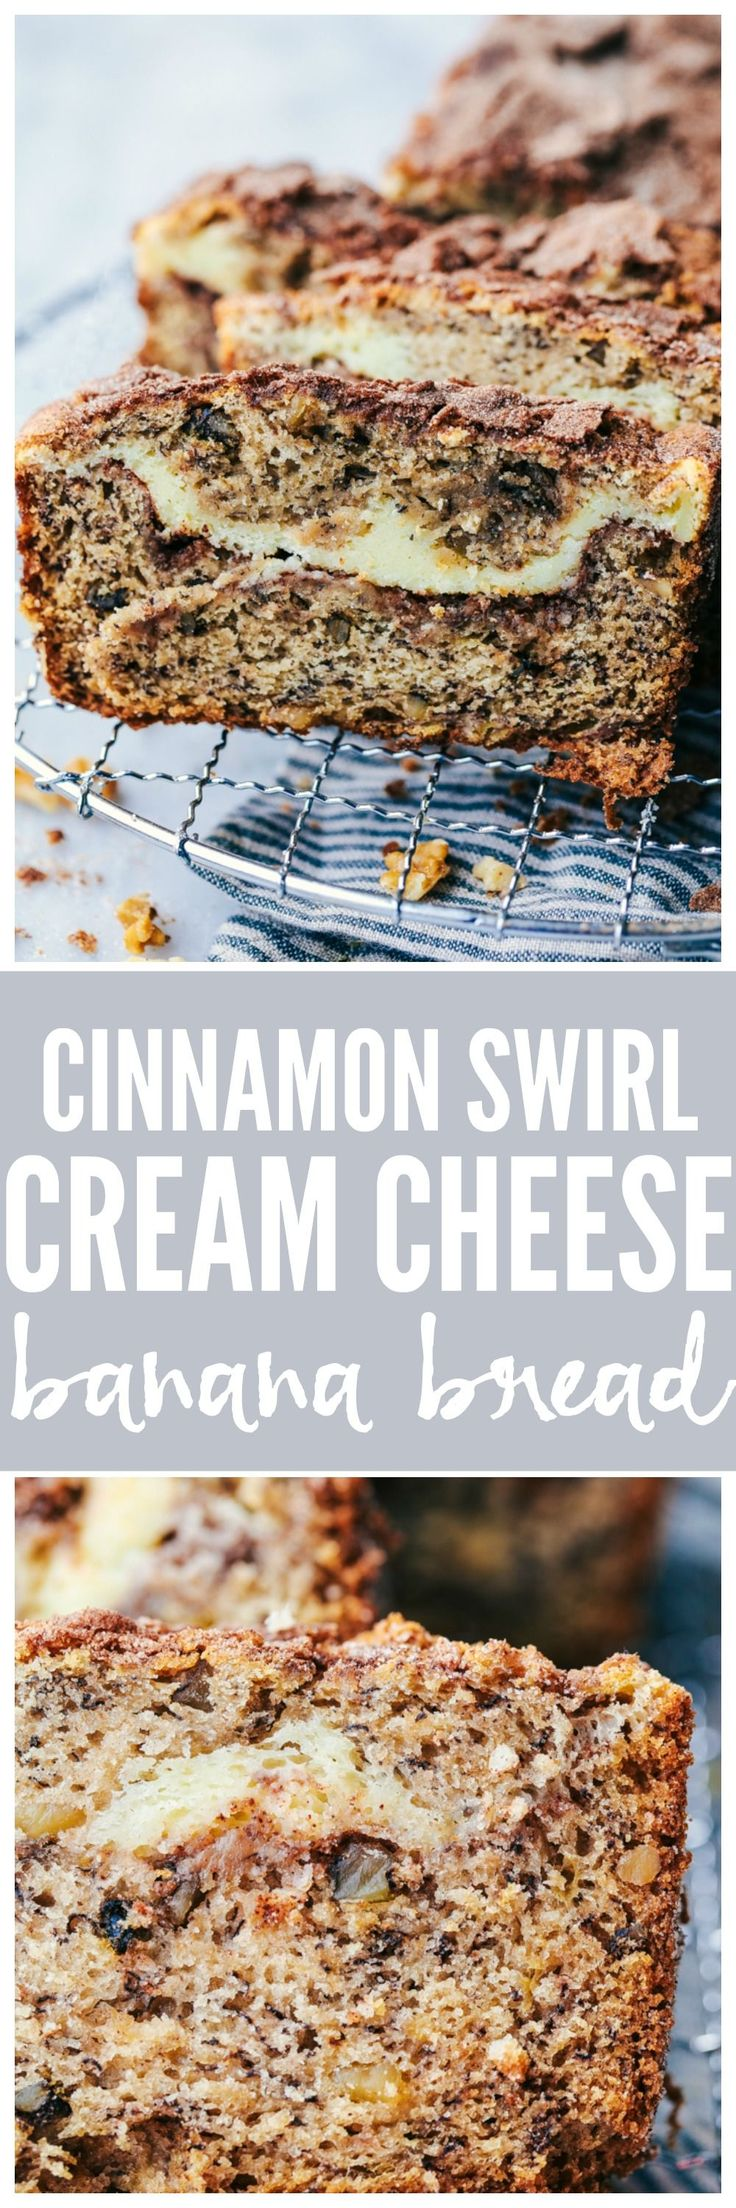 Cinnamon Swirl Cream Cheese Banana Bread has a delicious cinnamon swirl and cheesecake filling with walnuts hidden inside. This will easily be one of the best quick breads that you ever make!